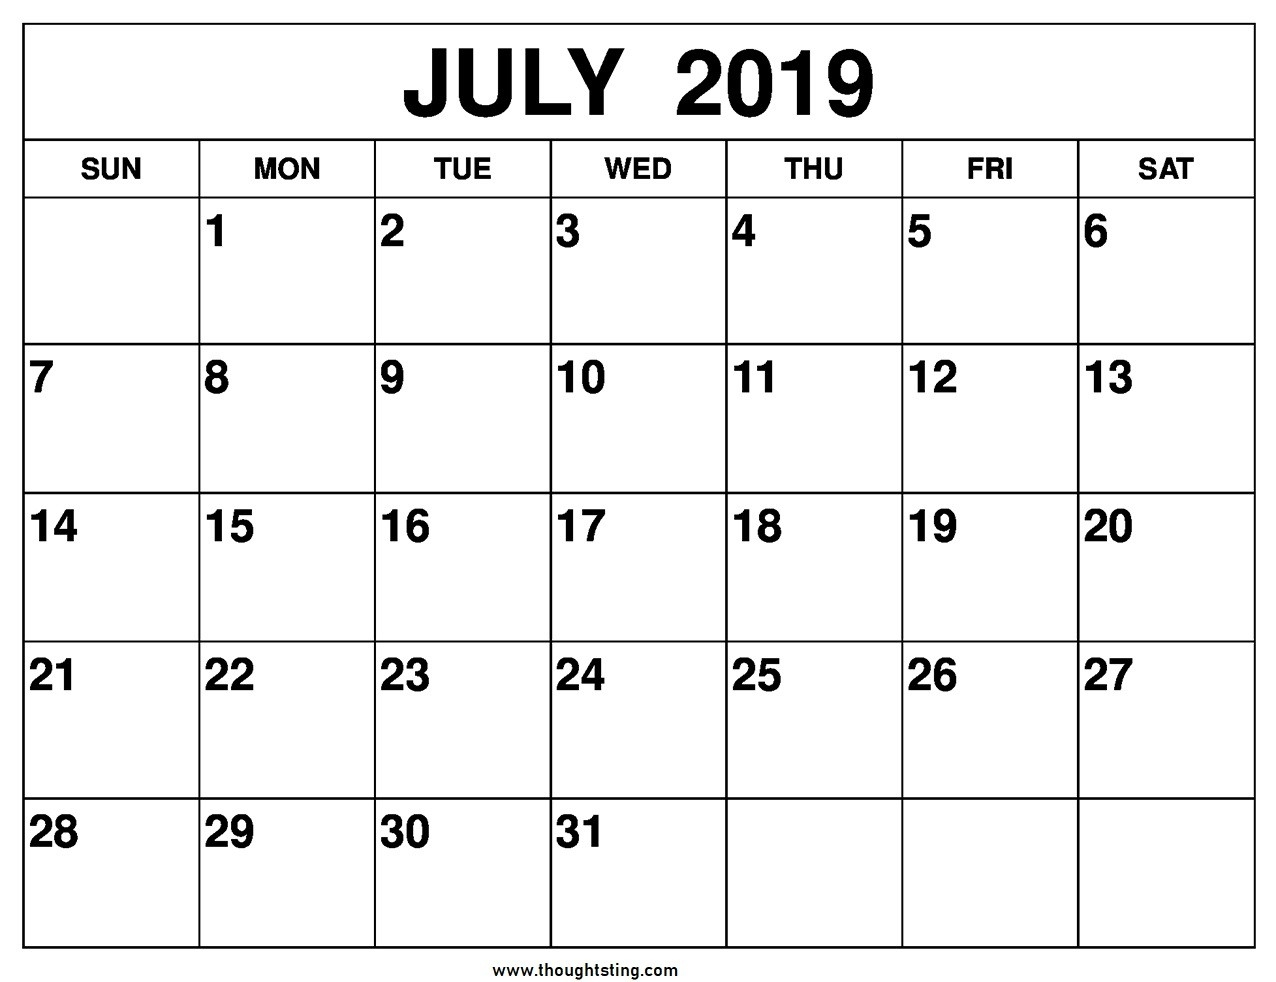 July 2019 Calendar Printable One Page Template - Free  Full Page Calendar Printable